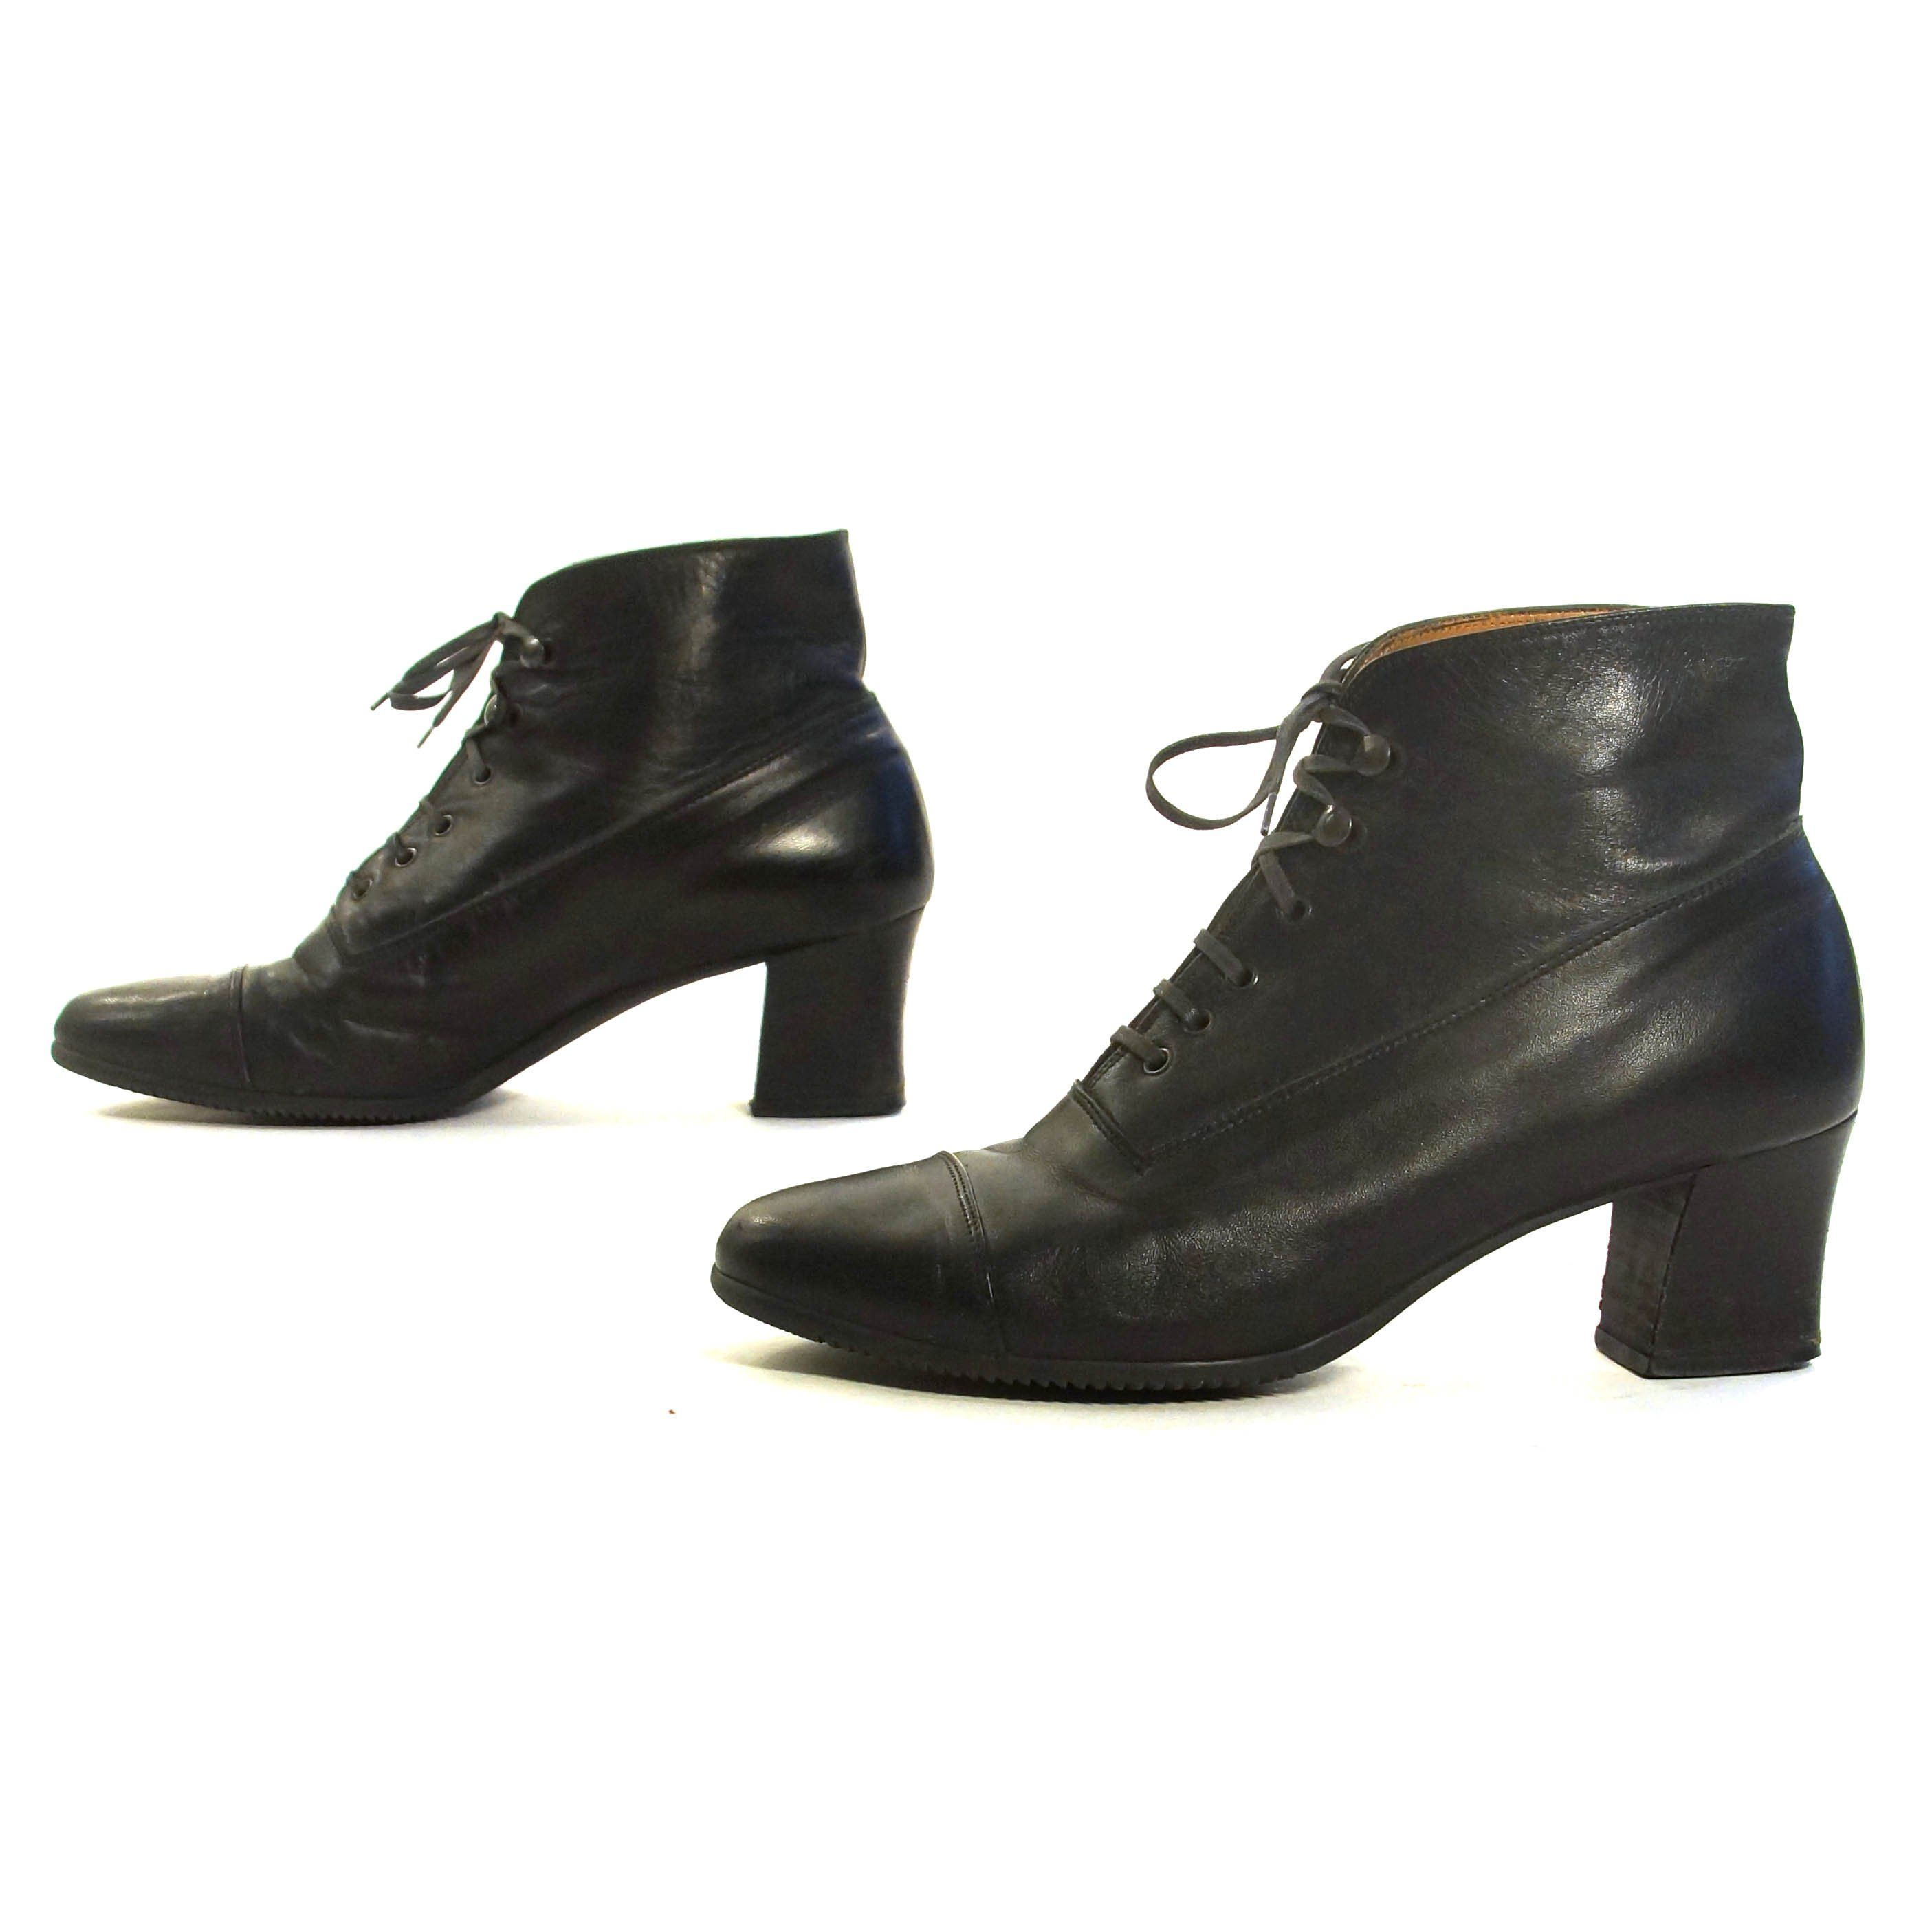 0276dc1f64cb Lace Up Ankle Boots Vintage 90s Short Black Leather Booties with Low Block  Heels Boho Grunge Hipster Preppy Women s Size 9 by SpunkVintage on Etsy